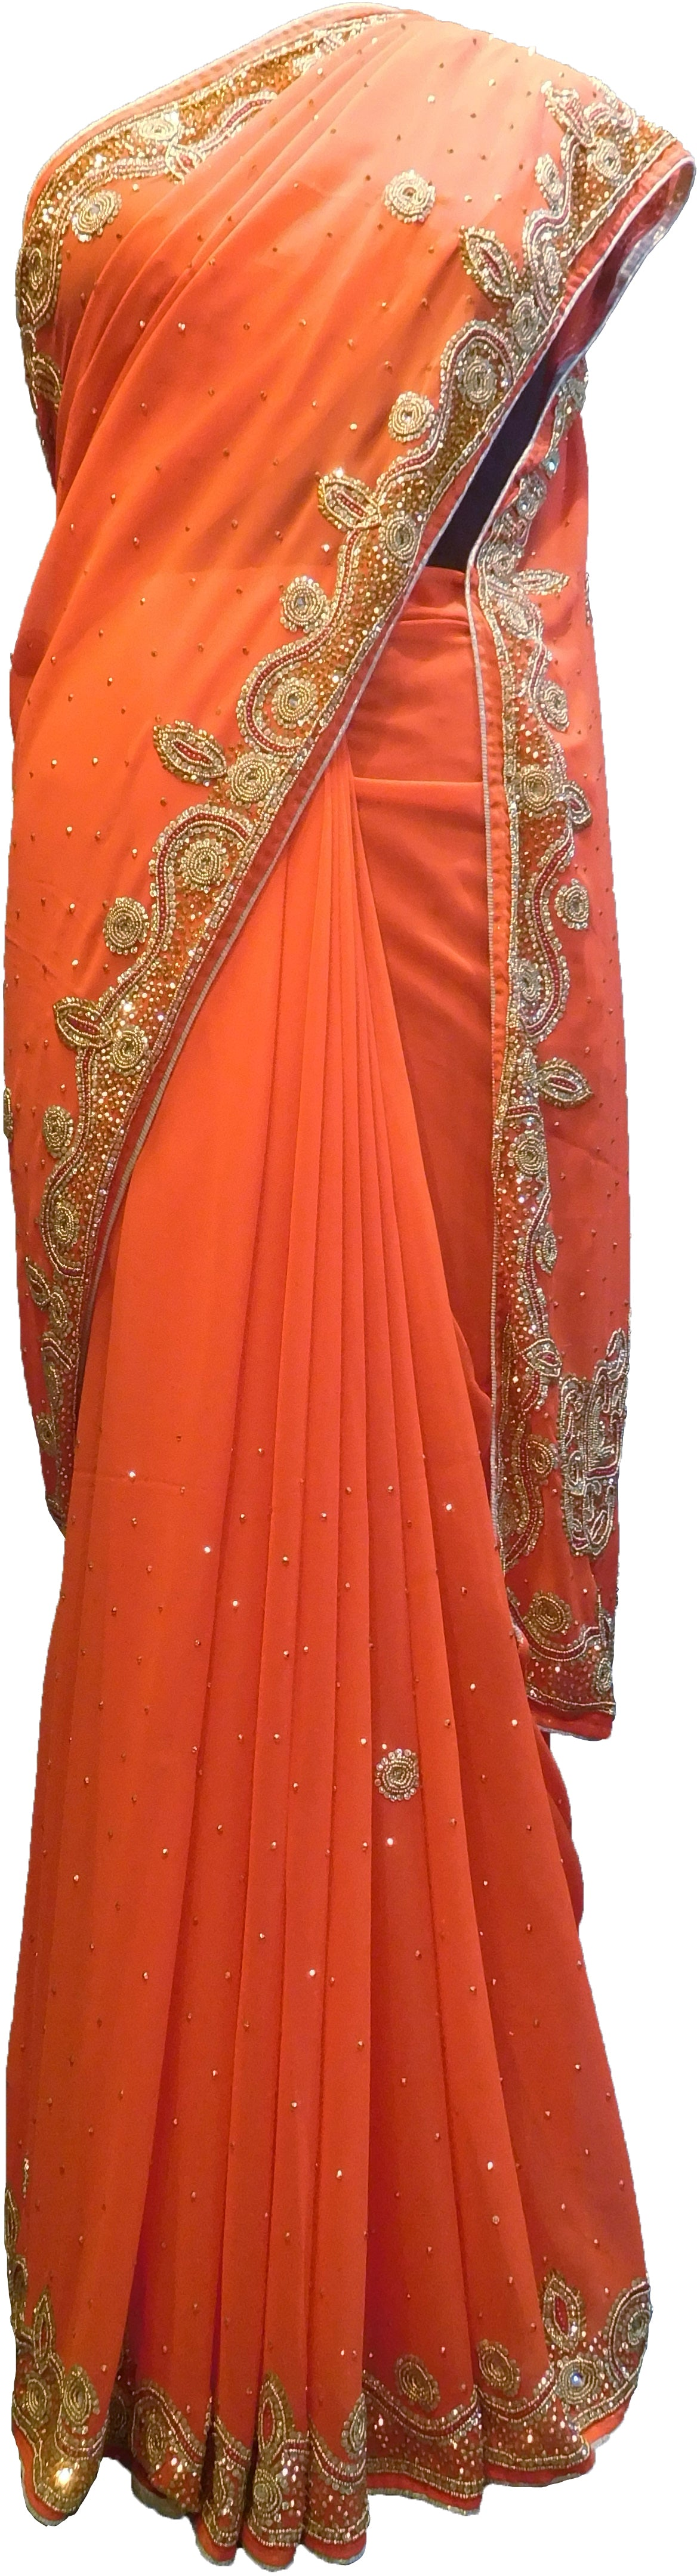 SMSAREE Orange Designer Wedding Partywear Georgette Beads & Stone Hand Embroidery Work Bridal Saree Sari With Blouse Piece F193